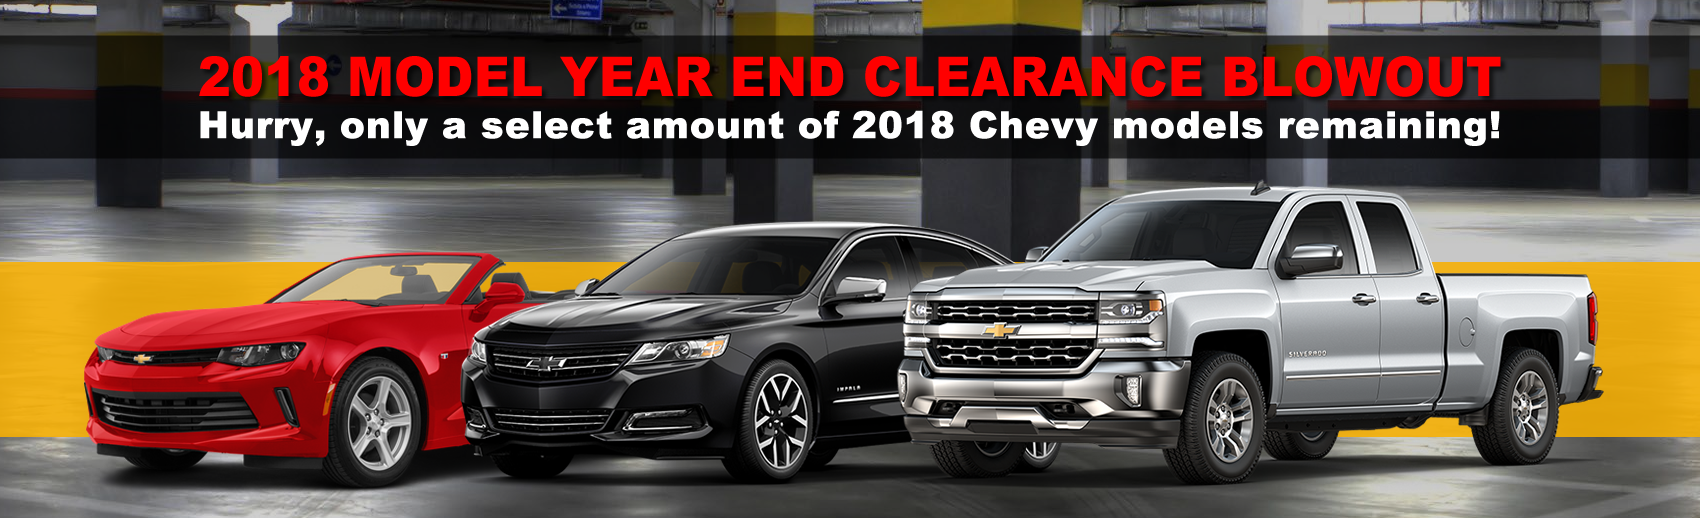 2018 Chevrolet Model Year End Clearance 2018 Leftover Chevy Deals